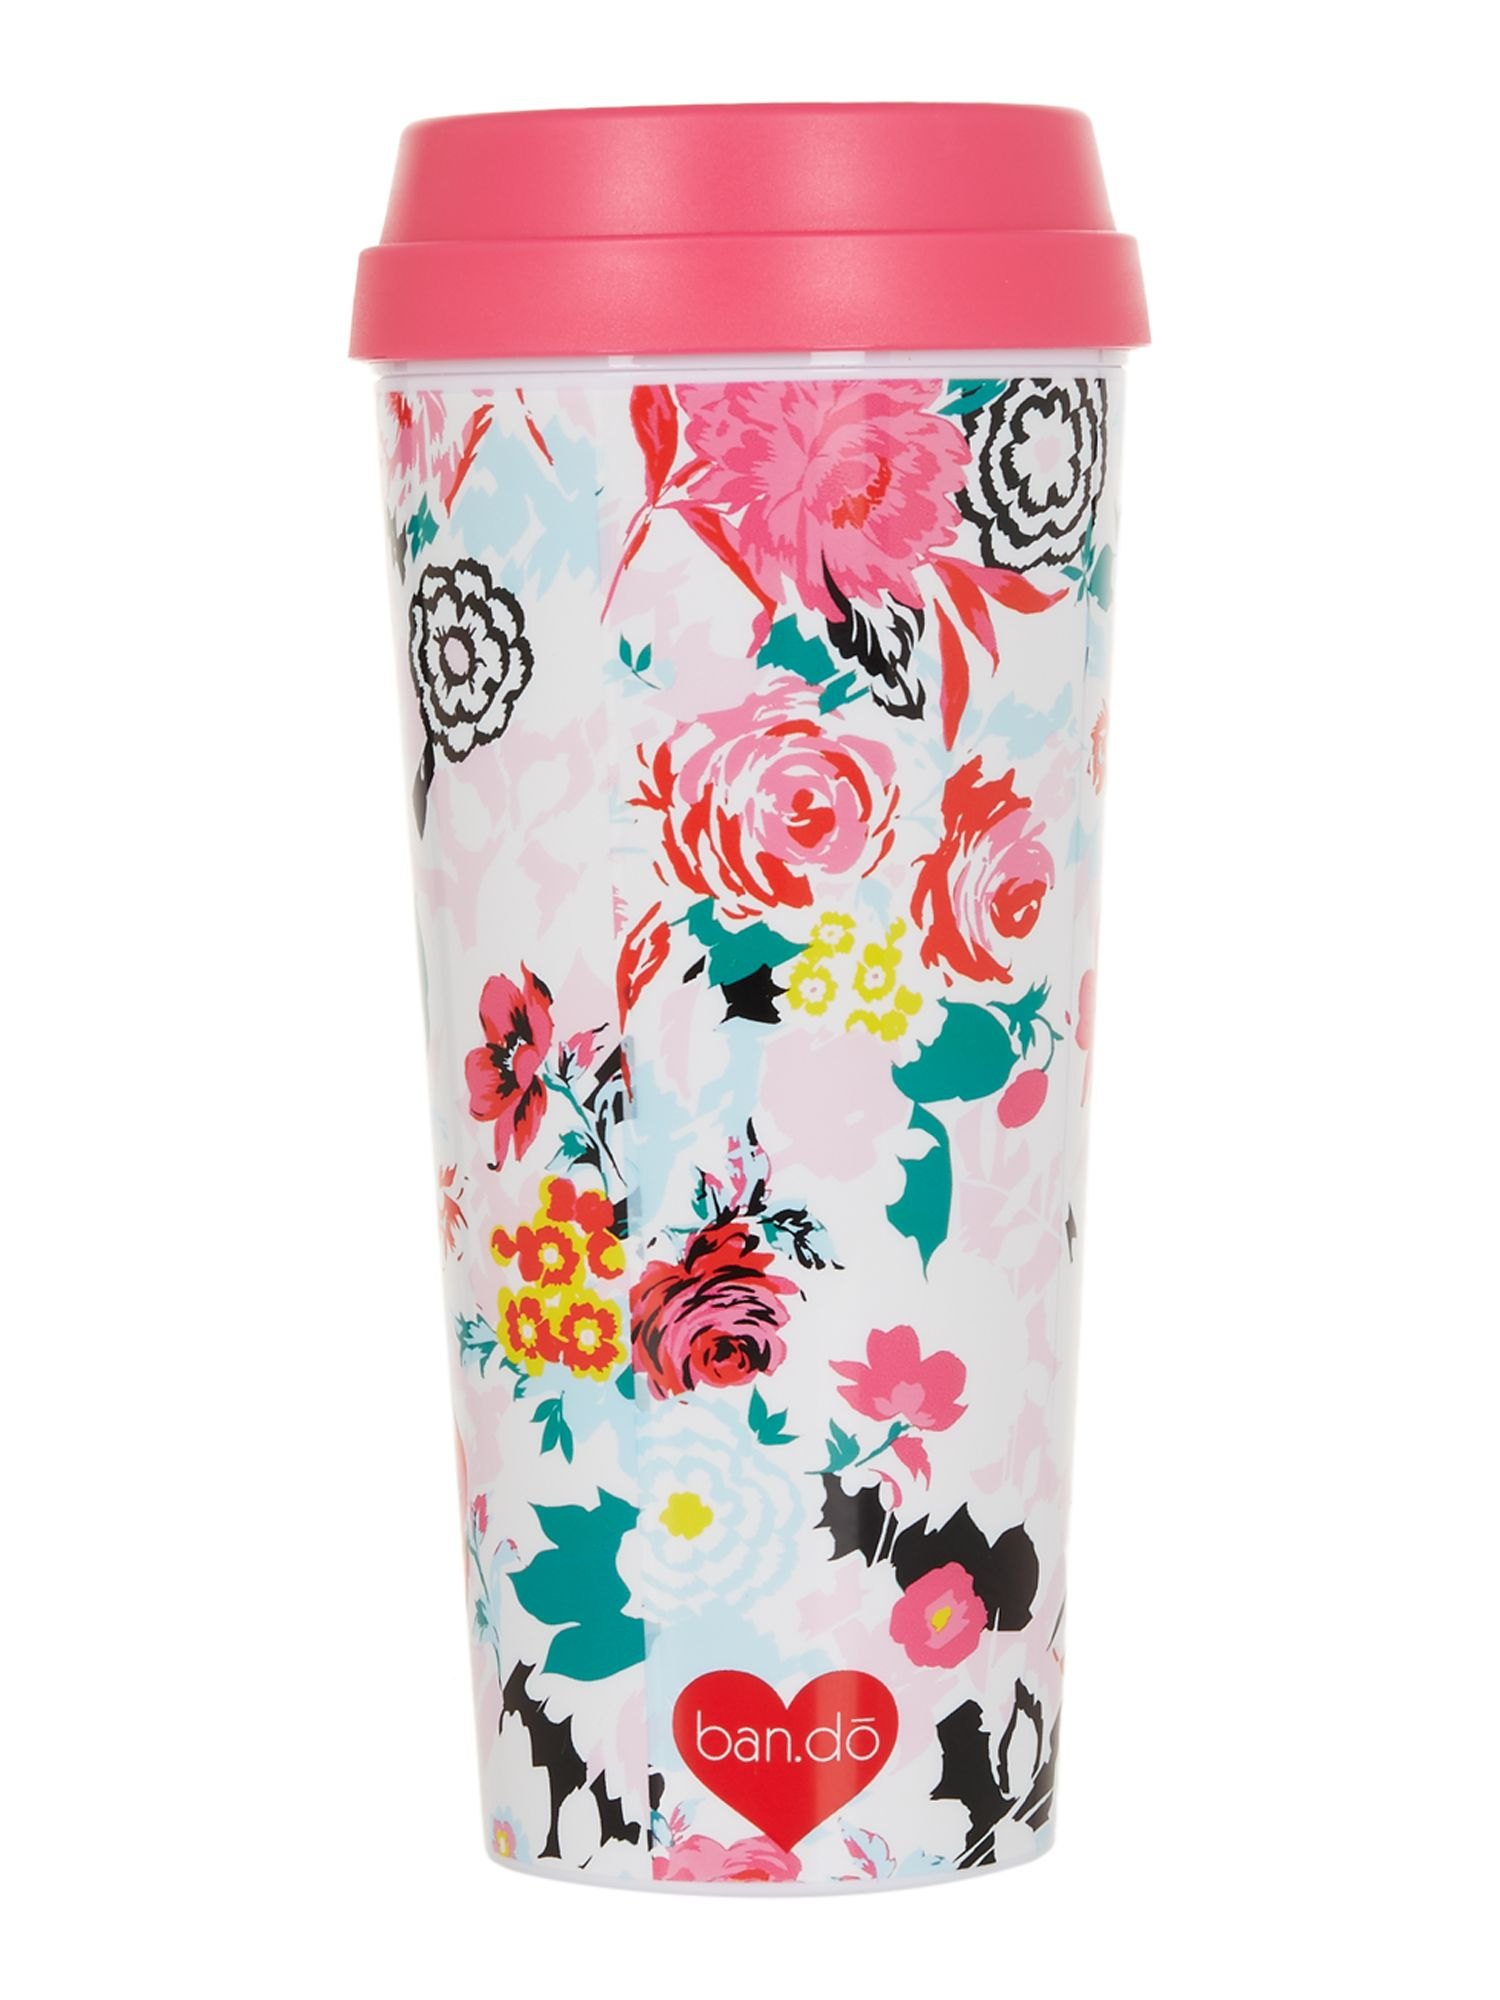 Image of Ban.do Mega blooms, hot stuff thermal mug